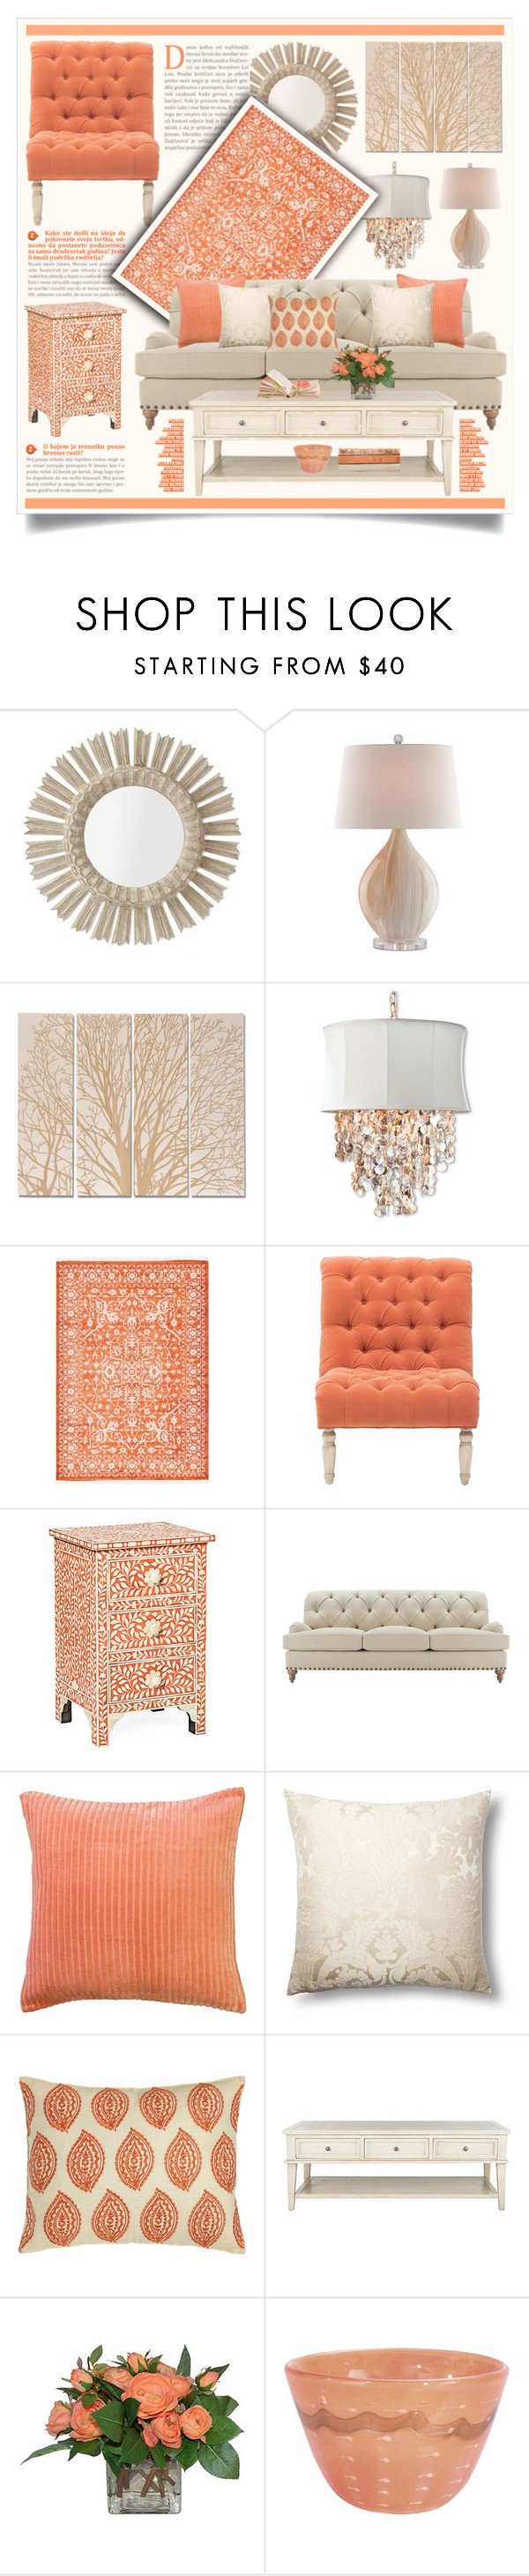 """""""Taupe & Salmon Living Room Decor"""" by hmb213 ❤ liked on Polyvore featuring interior, interiors, interior design, home, home decor, interior decorating, Williams-Sonoma, Currey & Company, Palecek and Pillow Decor"""